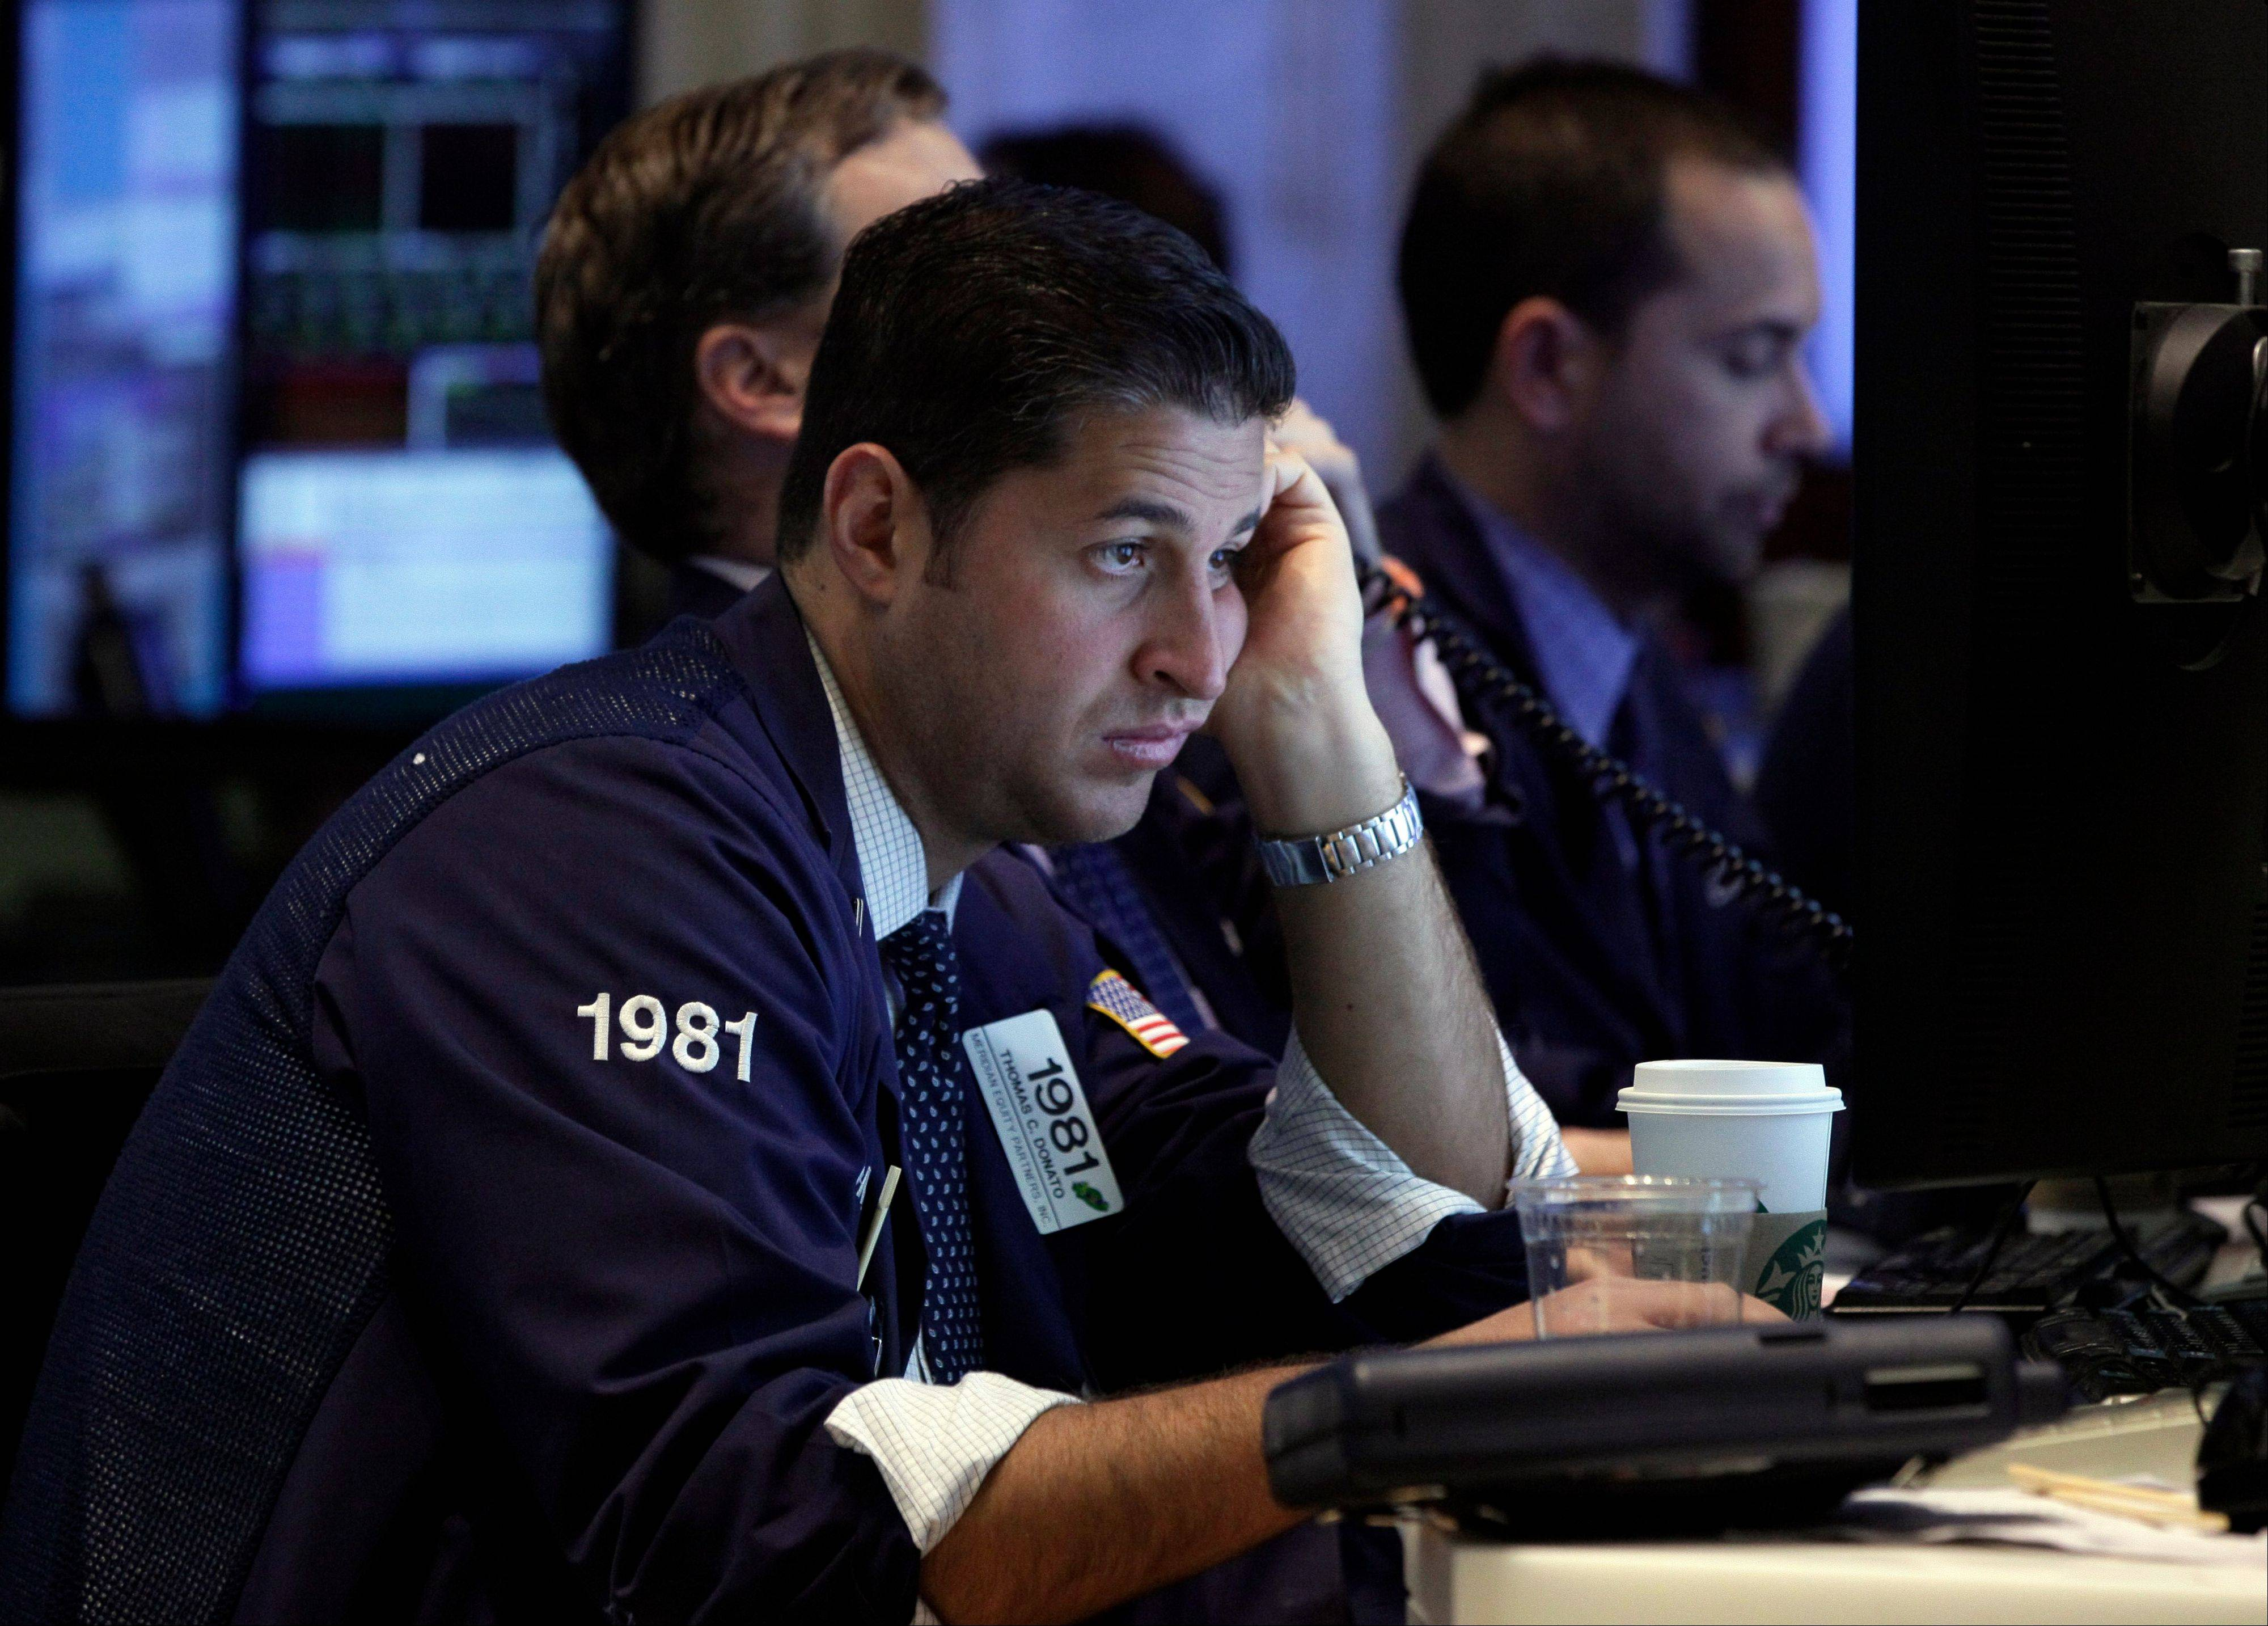 U.S. stocks retreated, giving the Dow Jones Industrial Average its biggest decline since June, amid disappointing results at companies from 3M Co. to DuPont Co. and as commodities erased their gain for the year.